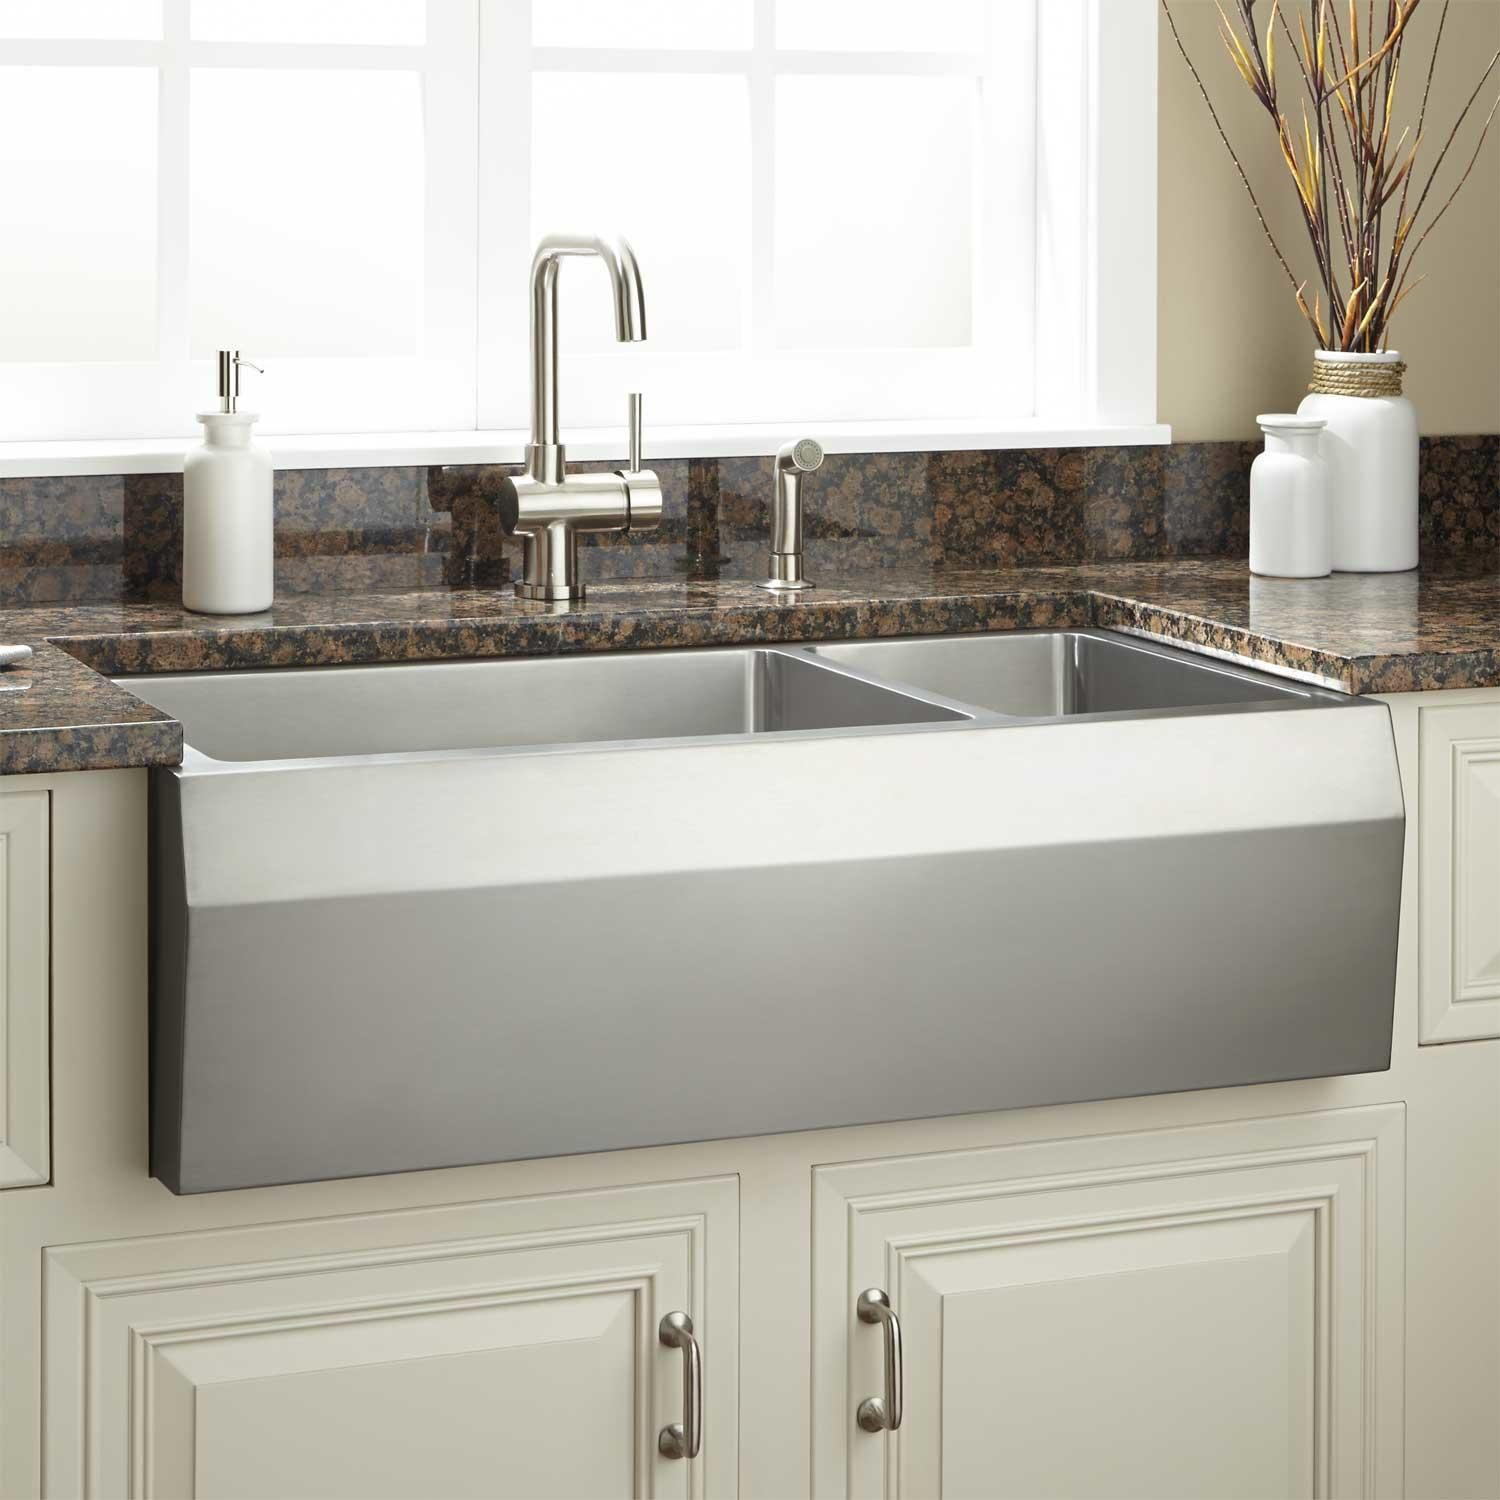 36 Optimum 70 30 Offset Double Bowl Stainless Steel Farmhouse Sink Angled Front Stainless Steel Farmhouse Sink Farmhouse Sink Stainless Farmhouse Sink